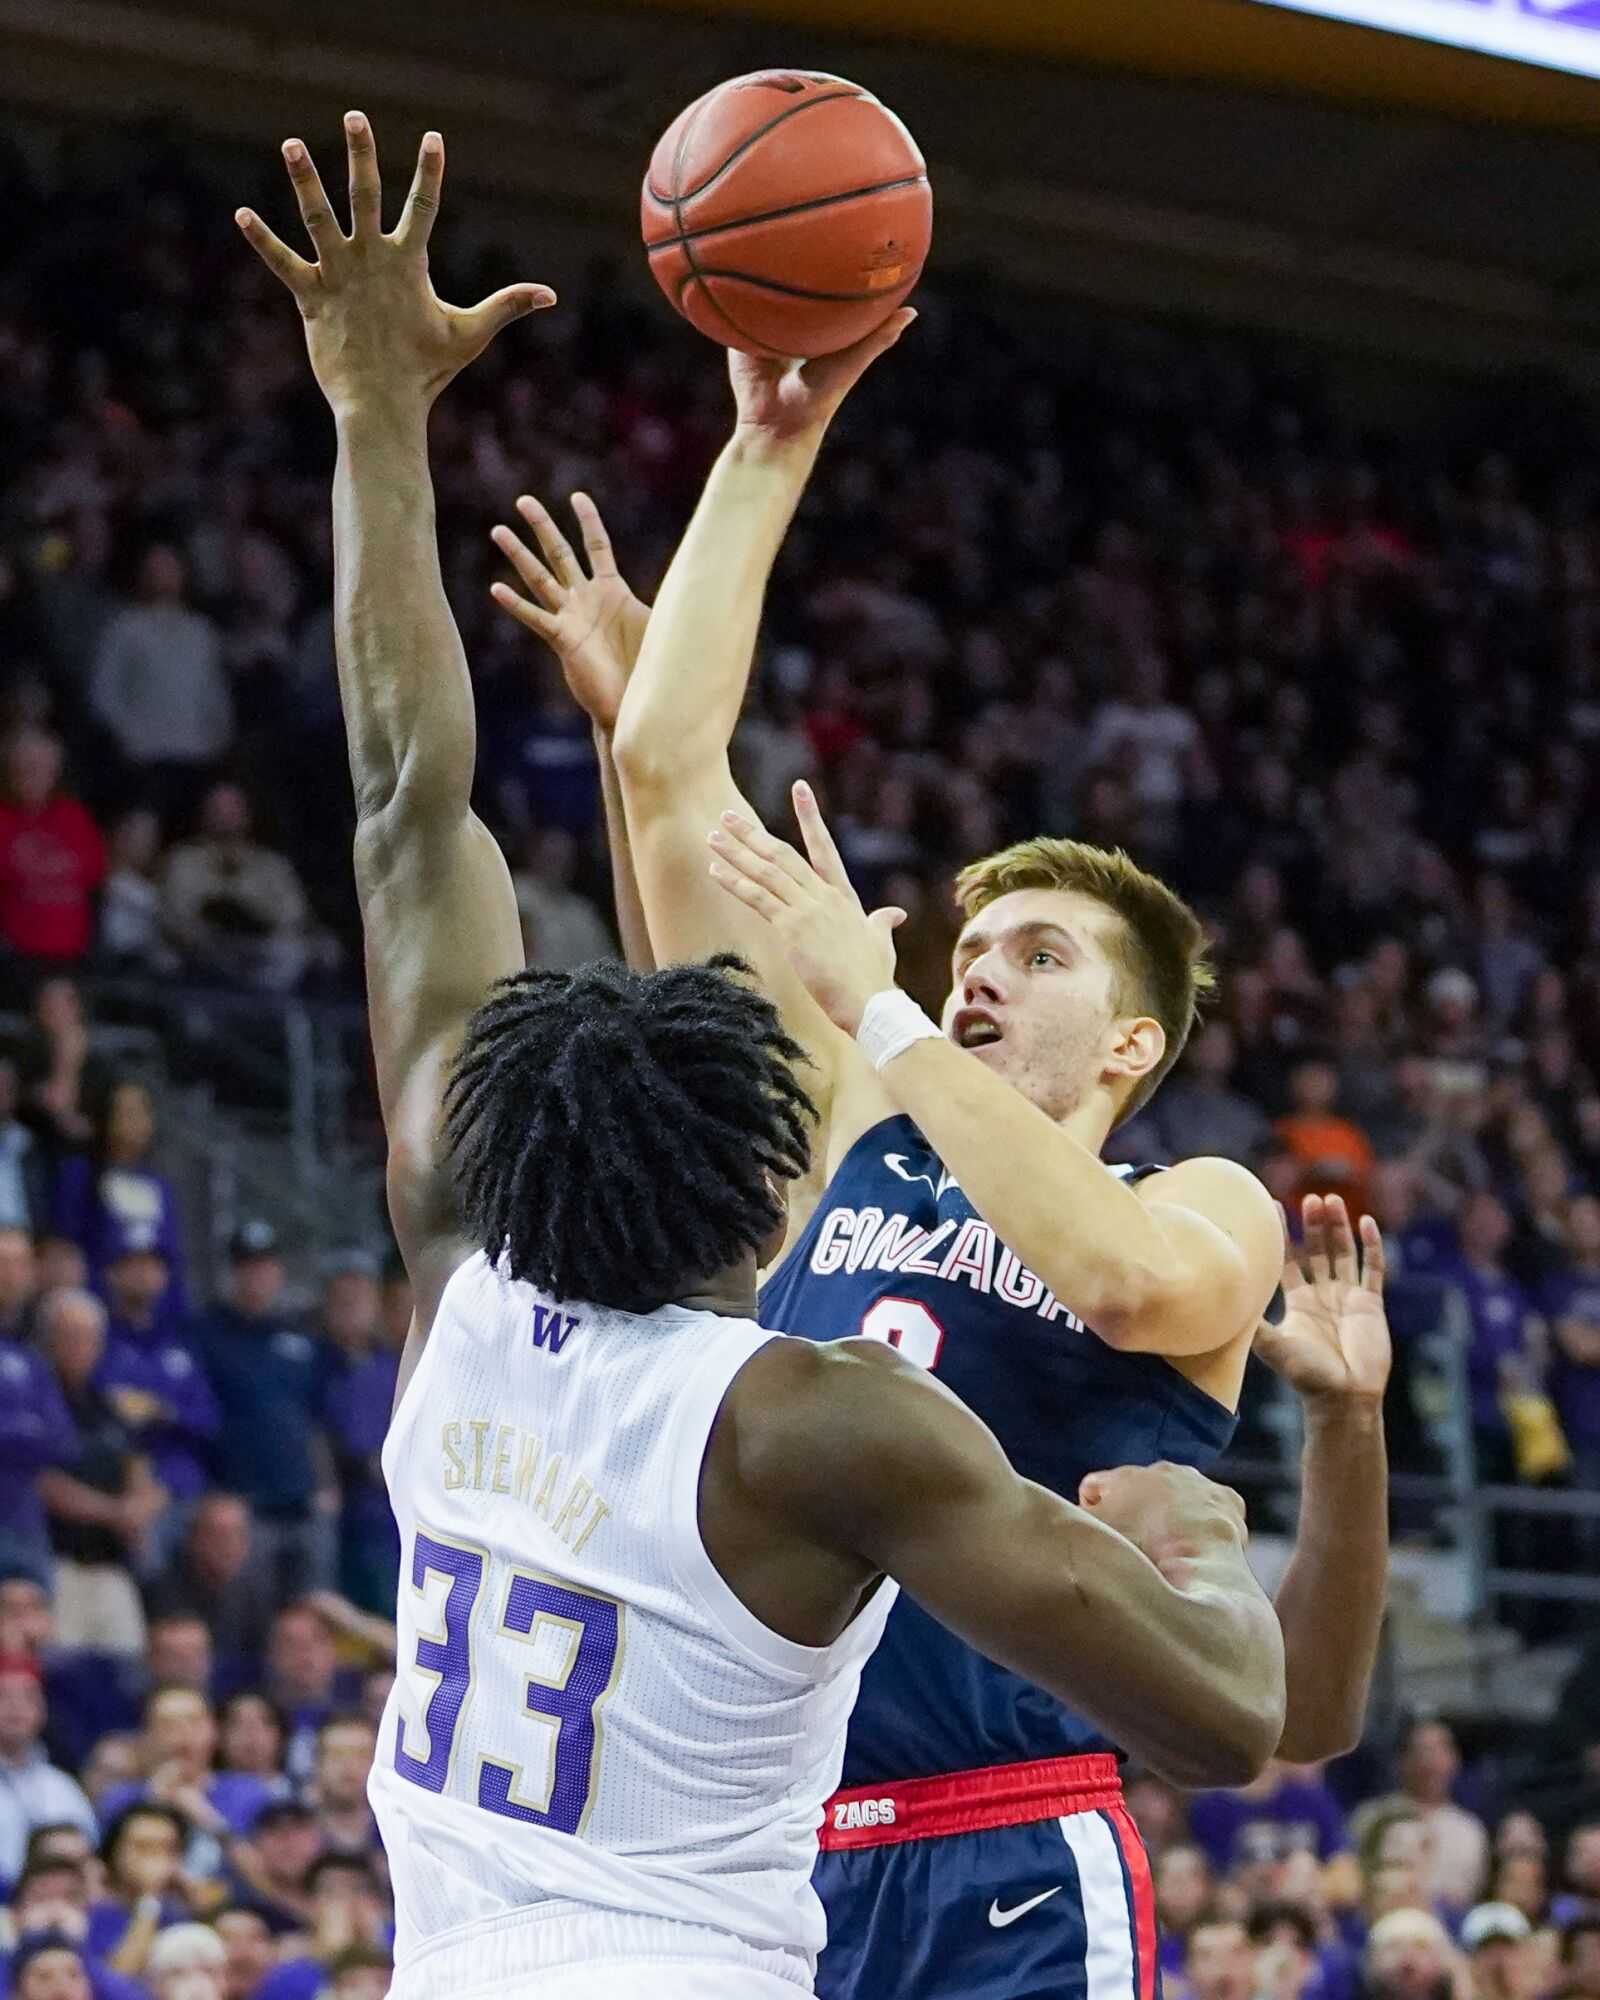 Washington Basketball needs to find answers in Colorado